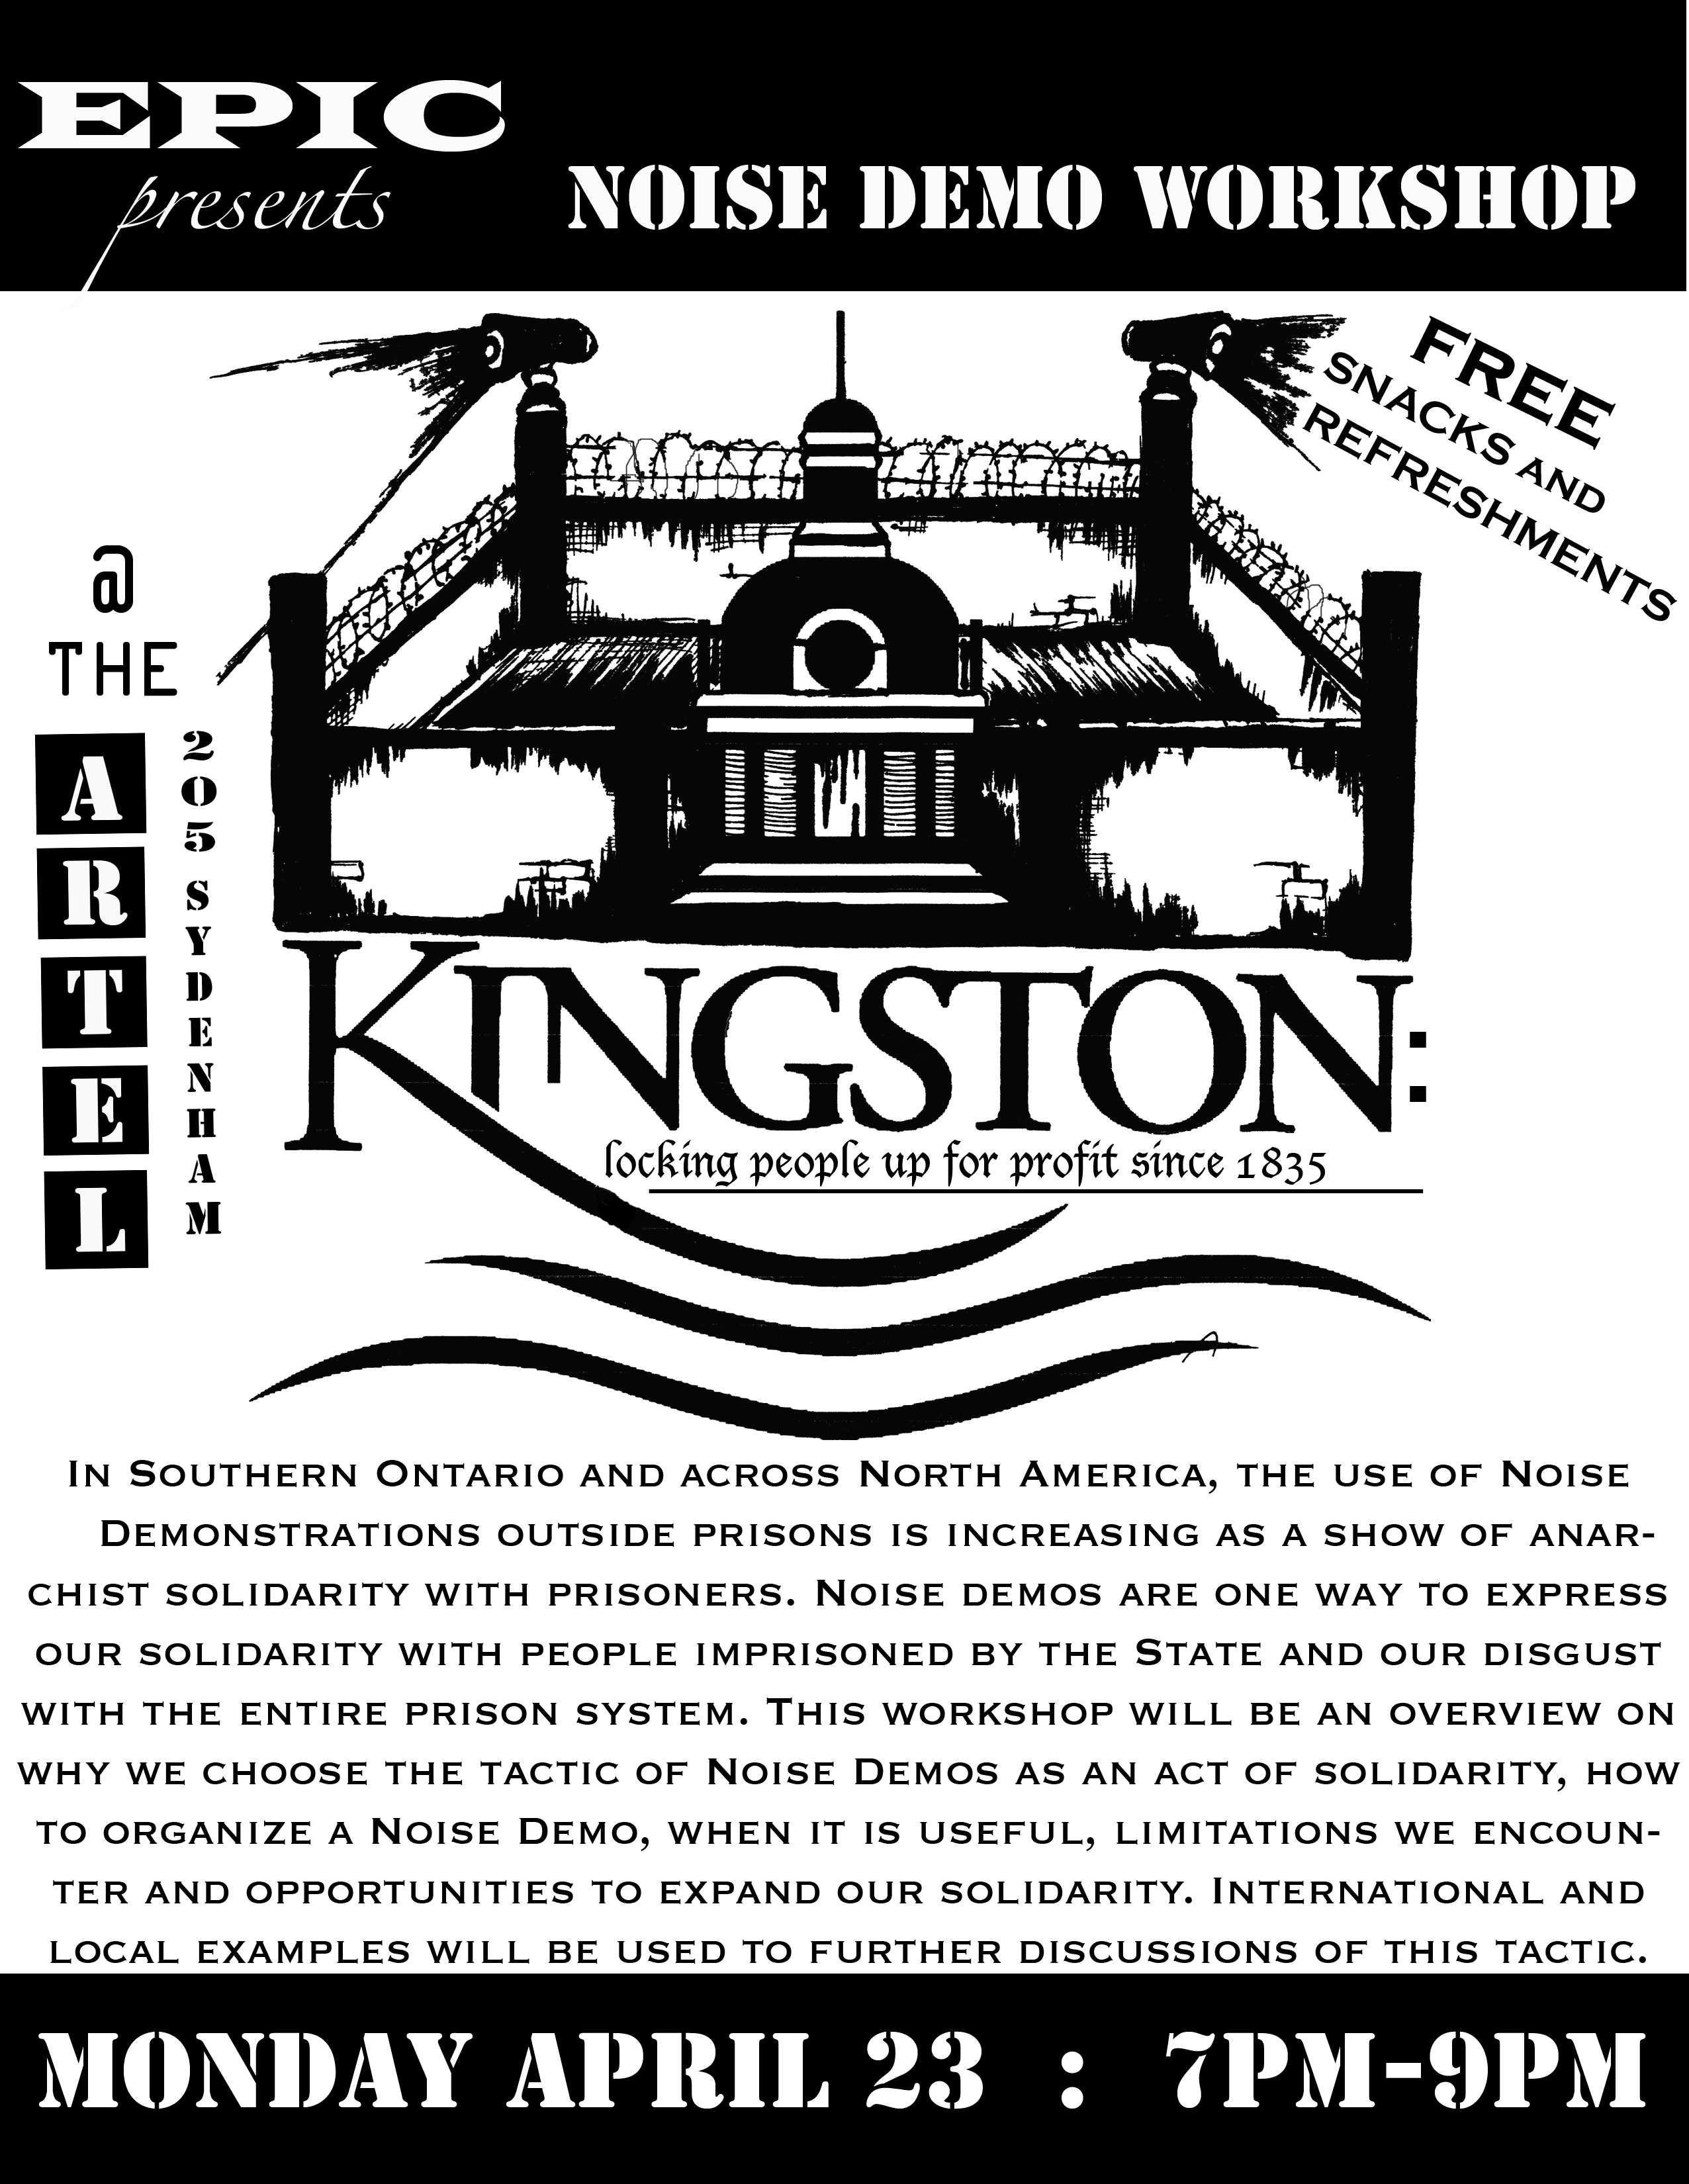 an analysis of justice alternatives to prison in kingston penitentiary Examples of these programs can be seen at the kingston penitentiary (spiritual because we see it as a multi-issue cause that brings together social justice, farm, food, organizations, rehabilitation prison justice dowling stated that an alternative use for the prison farmland.